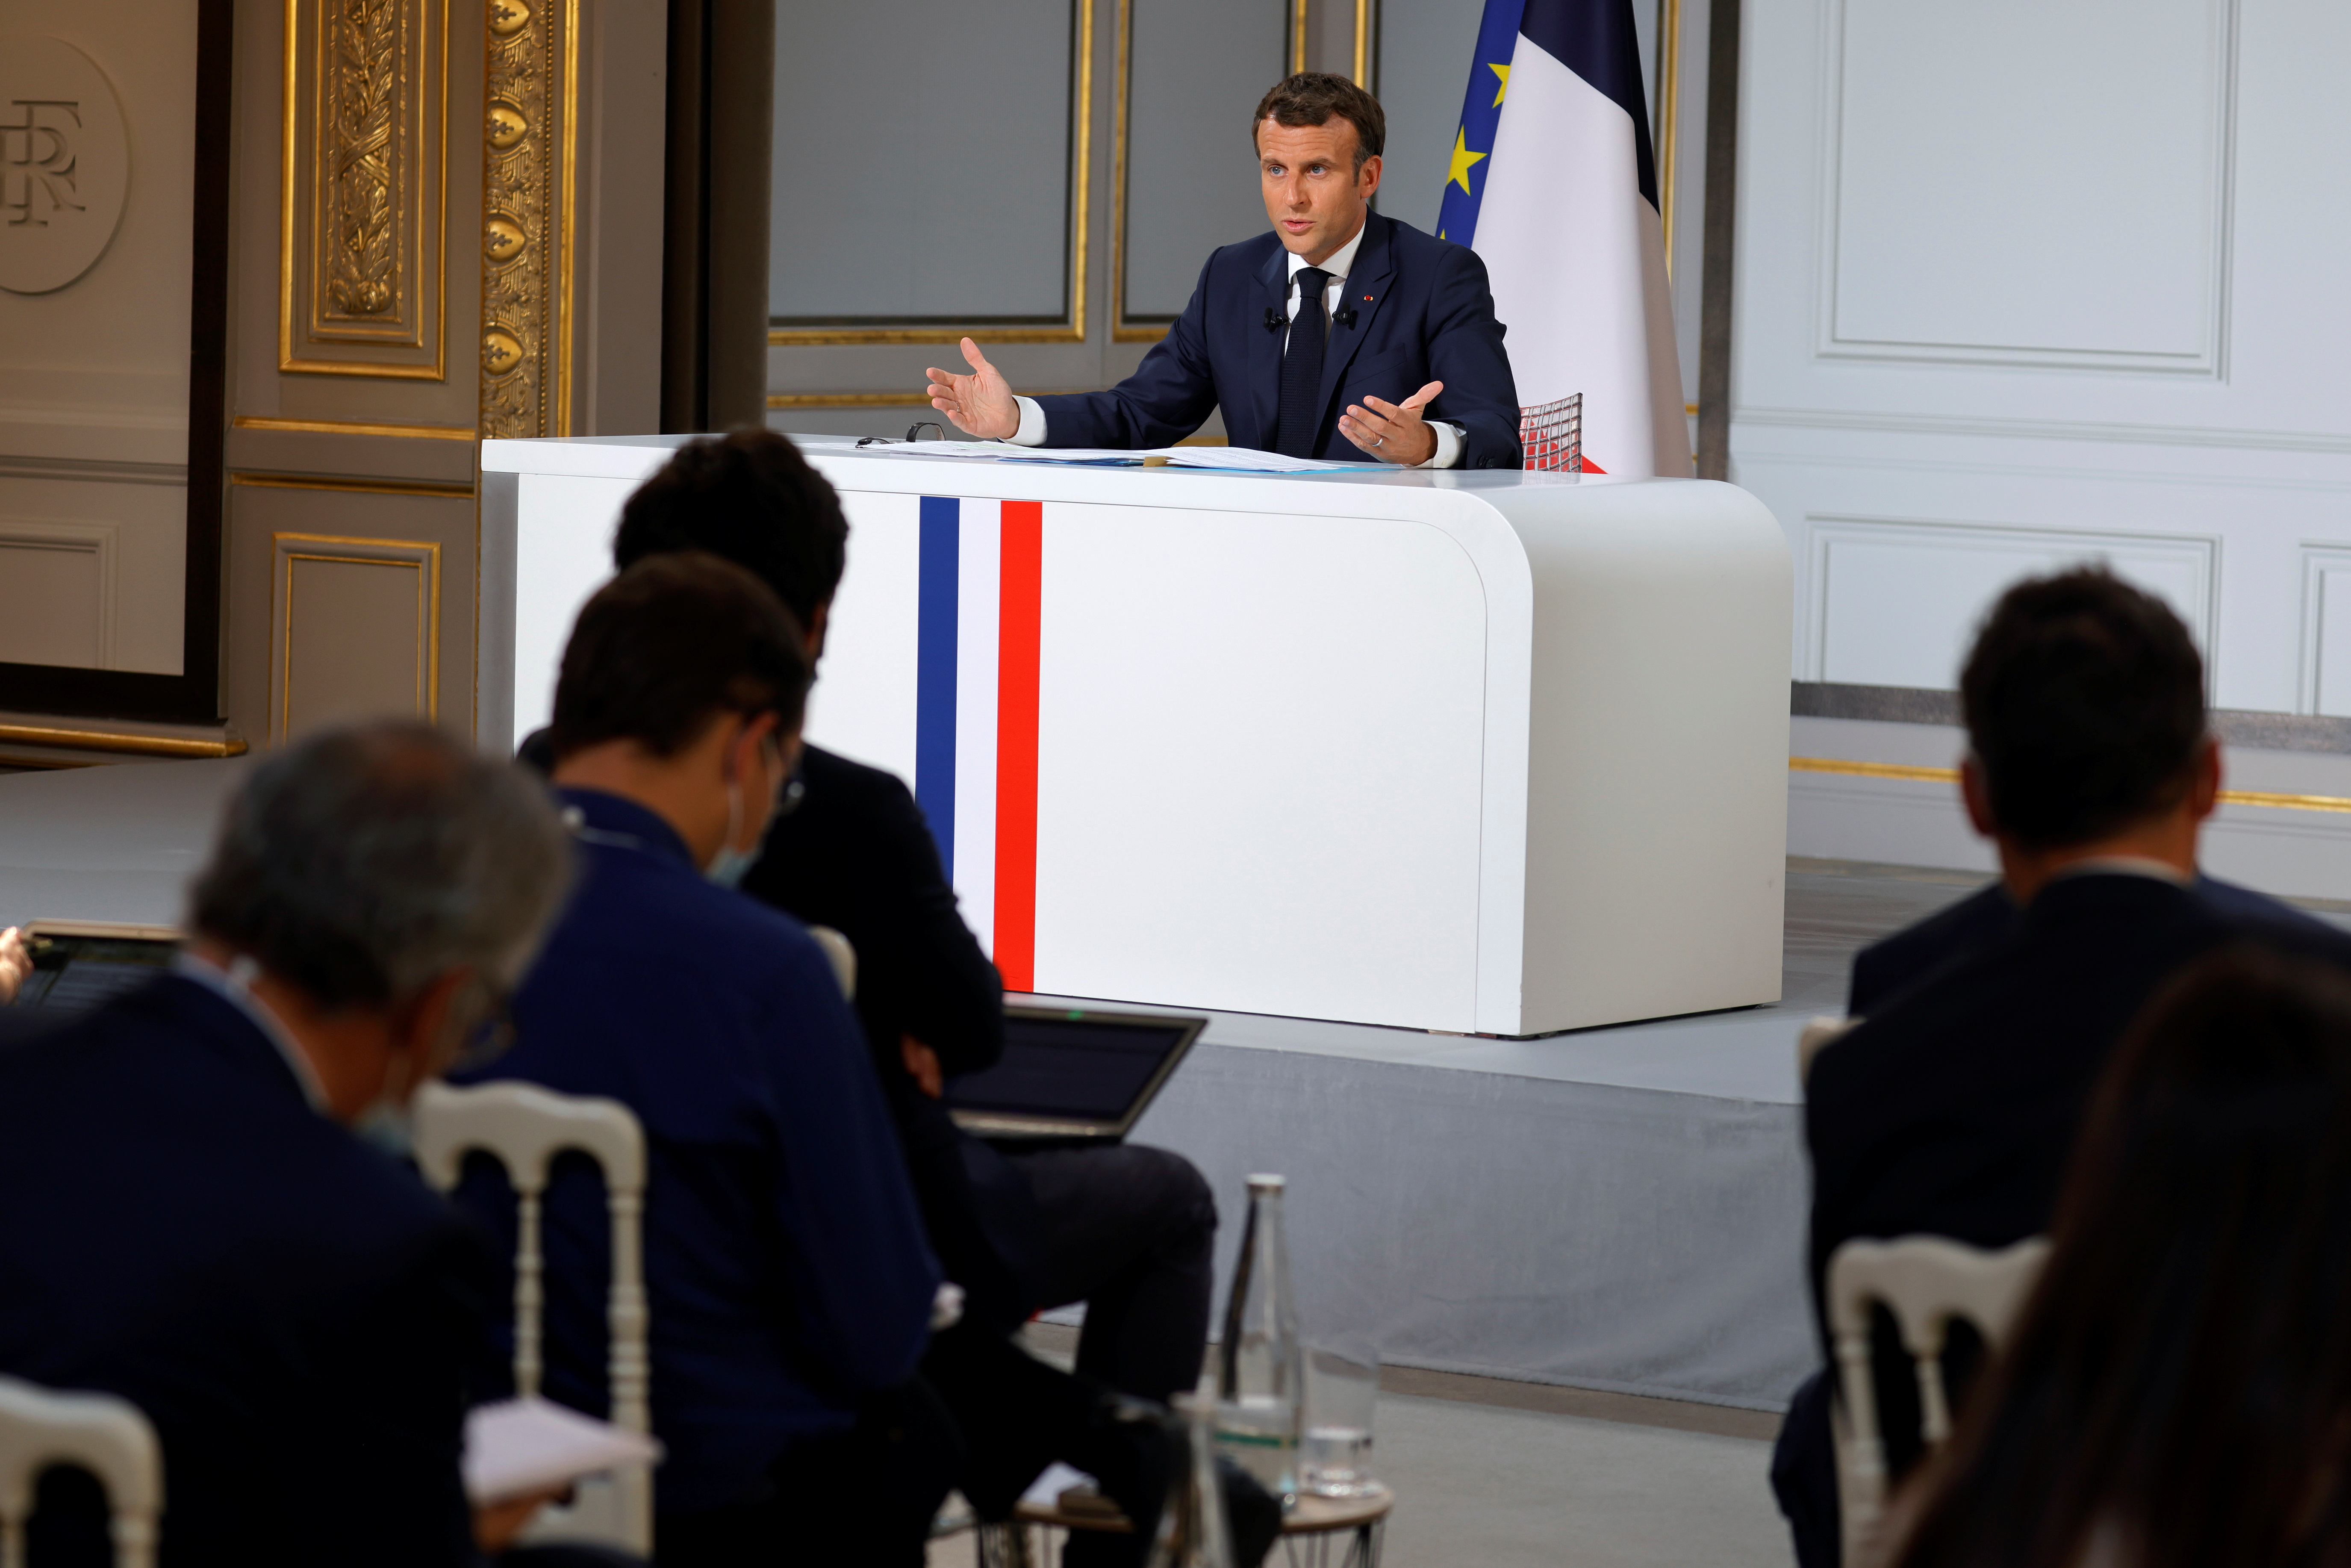 French President Emmanuel Macron speaks during a news conference ahead of the G7 Summit, at the Elysee Palace in Paris, France, June 10, 2021. REUTERS/Pascal Rossignol/Pool